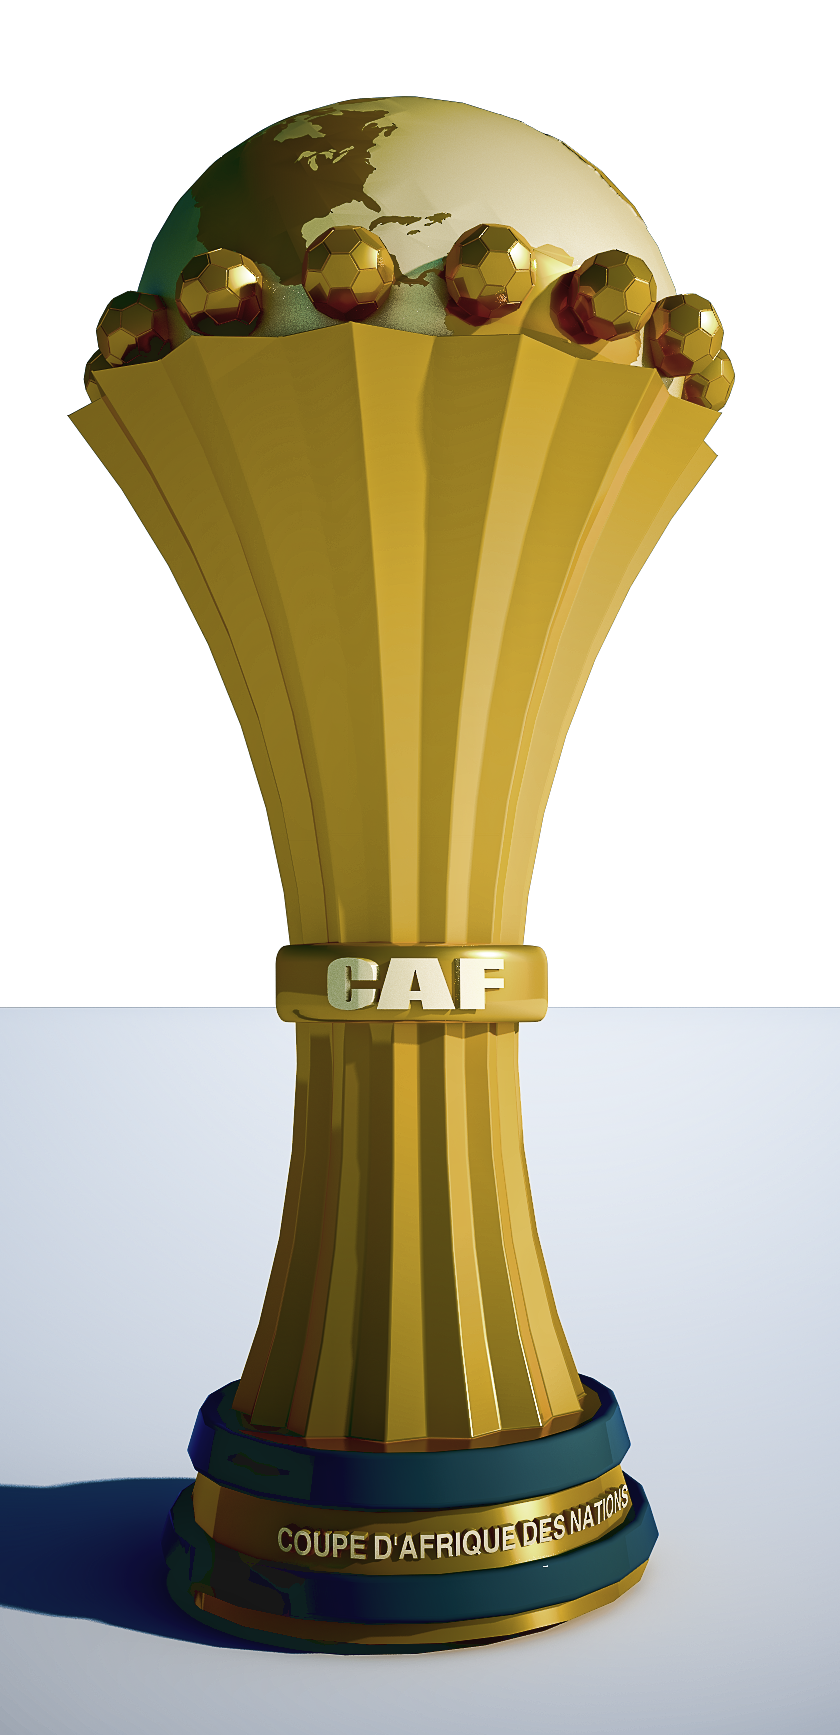 Coupe d 39 afrique des nations can by raouf007 on deviantart - Coupe d afrique streaming live ...